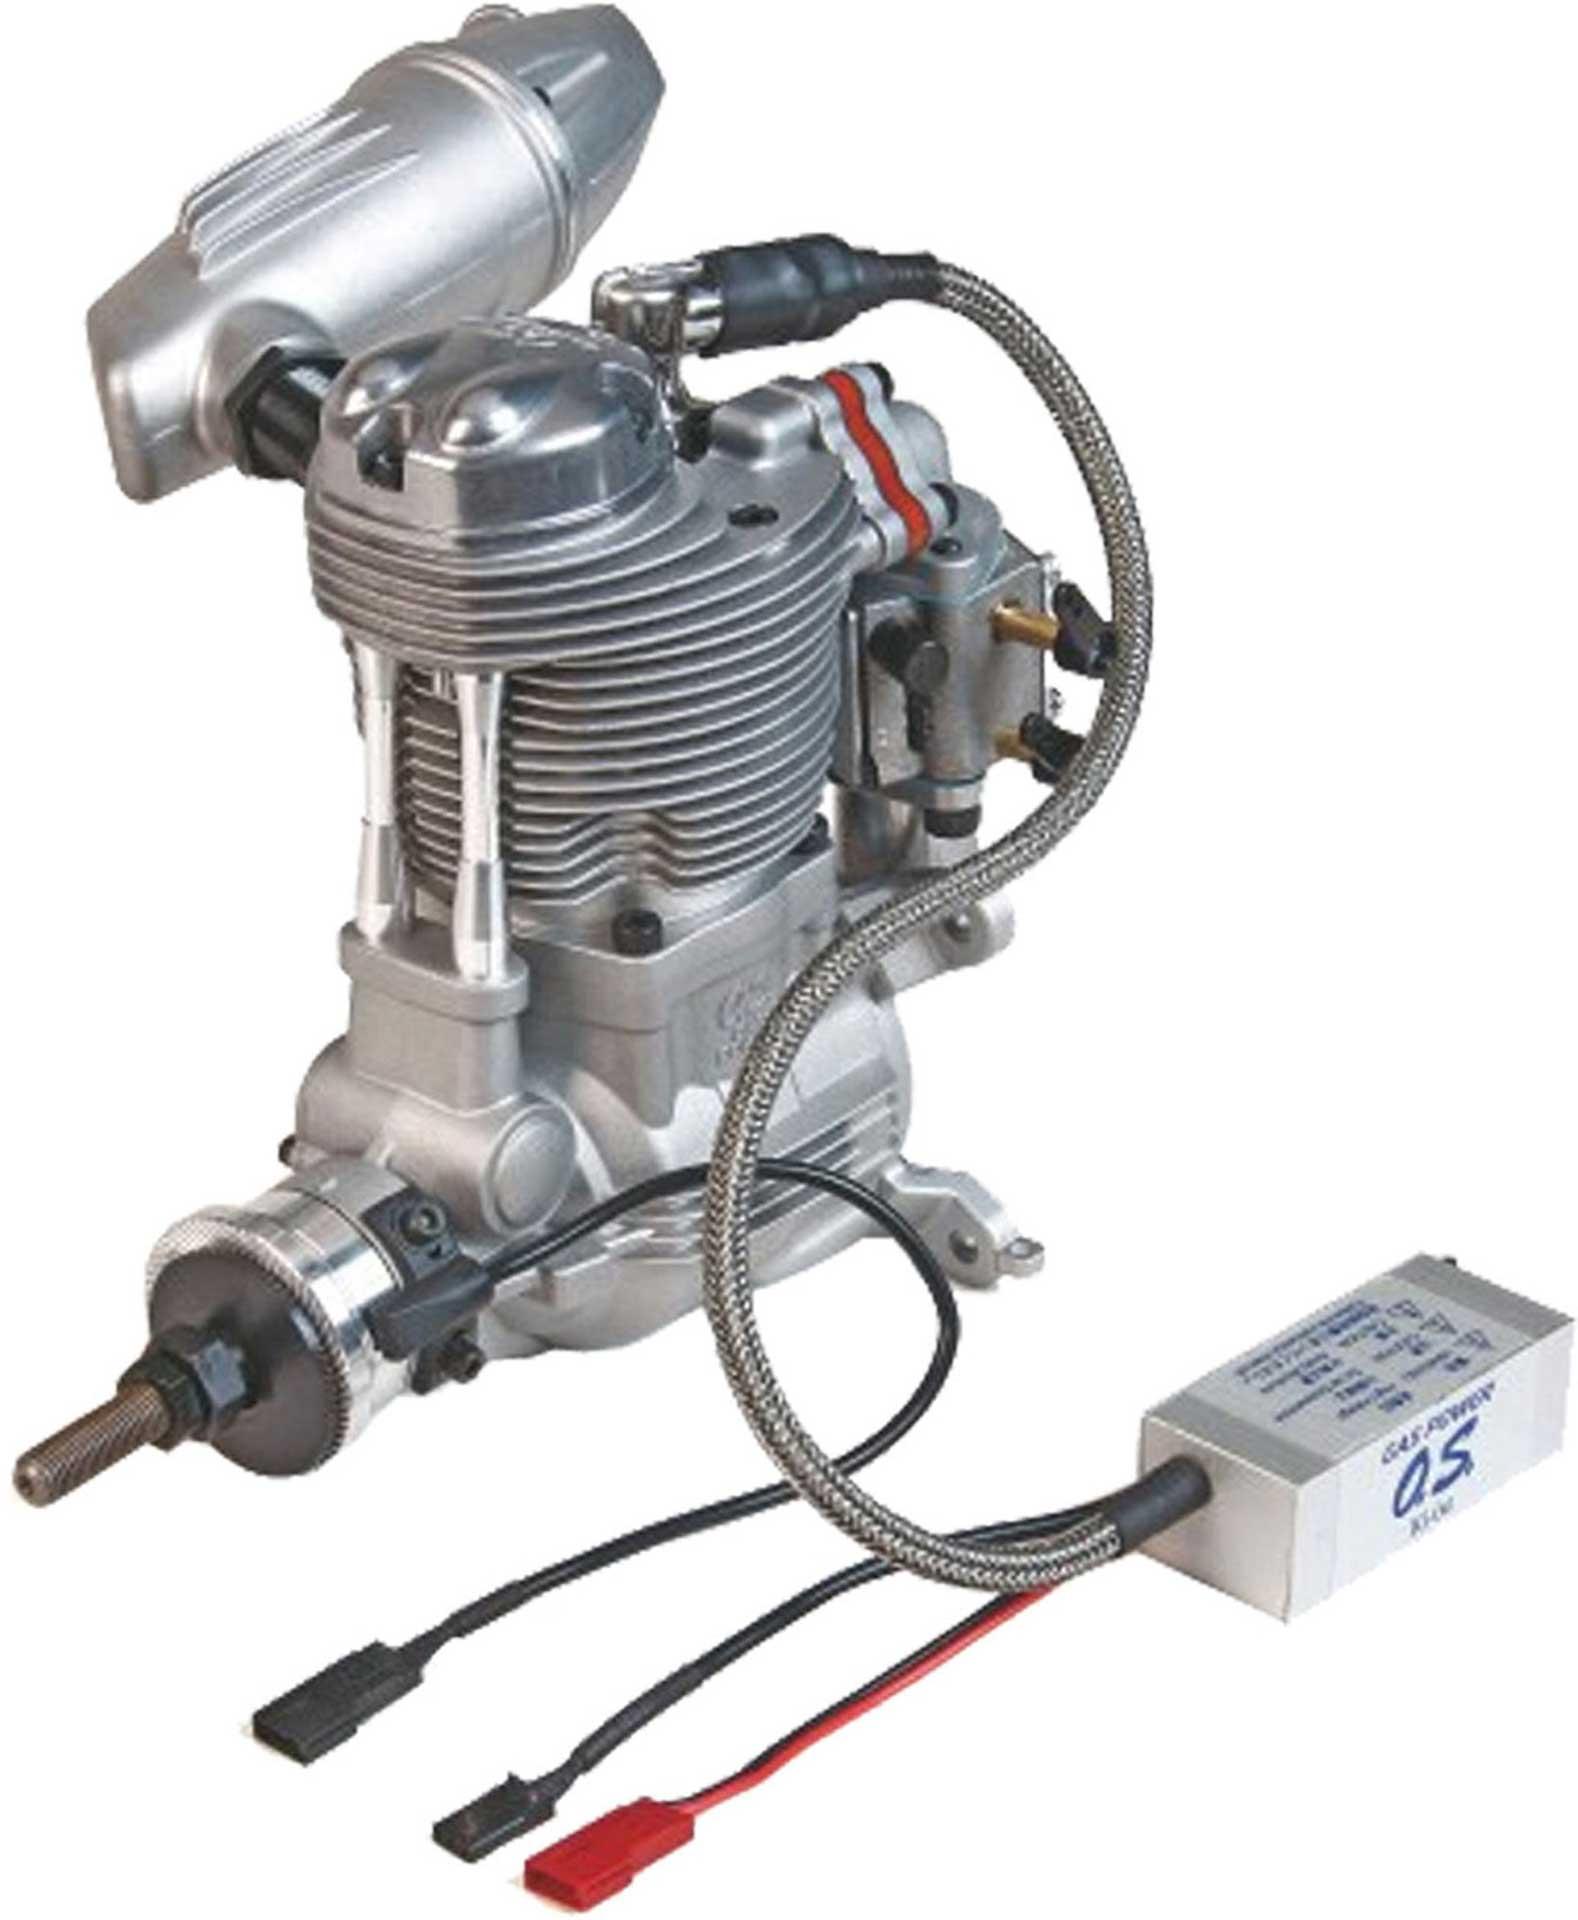 OS GF 40 PETROL 4-STROKE ENGINE WITH SILENCER AND ELECTRONIC IGNITION